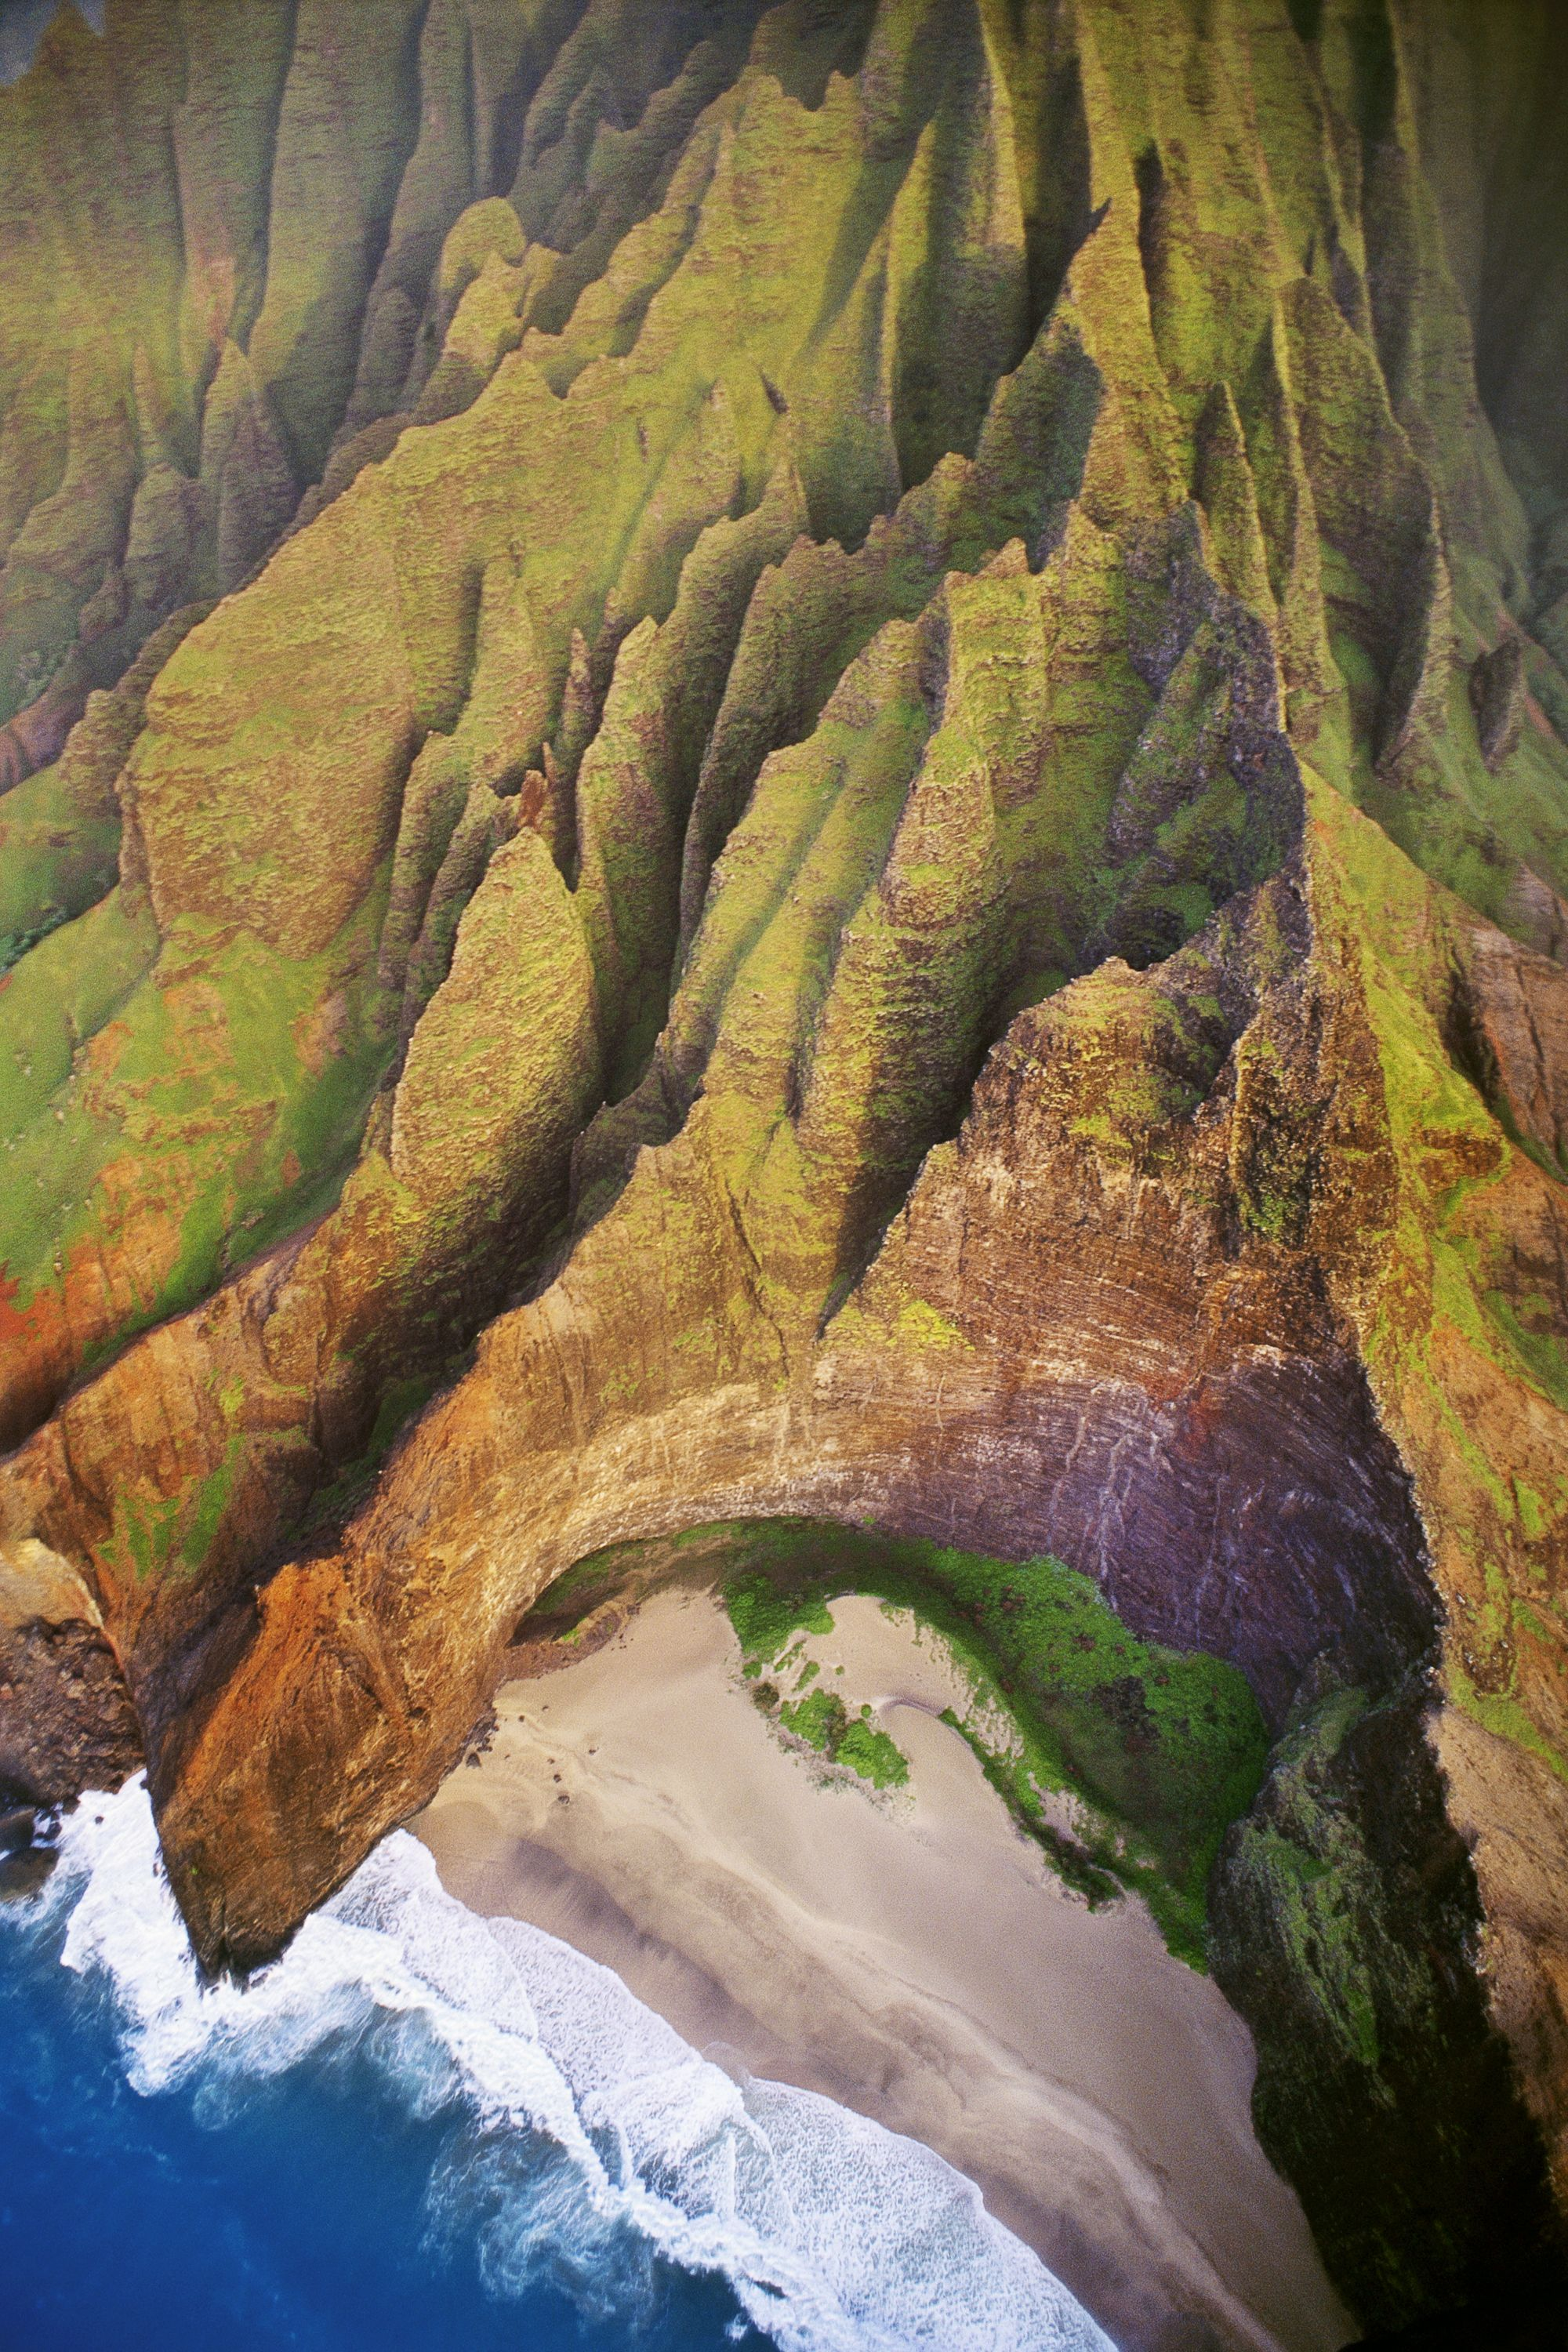 "<p><strong>Where: </strong>Honopu Beach, Hawaii<span class=""redactor-invisible-space""></span> </p><p><strong>Why We Love It: </strong>While there are too many beautiful beaches in Hawaii to pick just one, the remoteness of this stretch of sand on Kauai's Na Pali Coast make it one of our favorites.</p>"